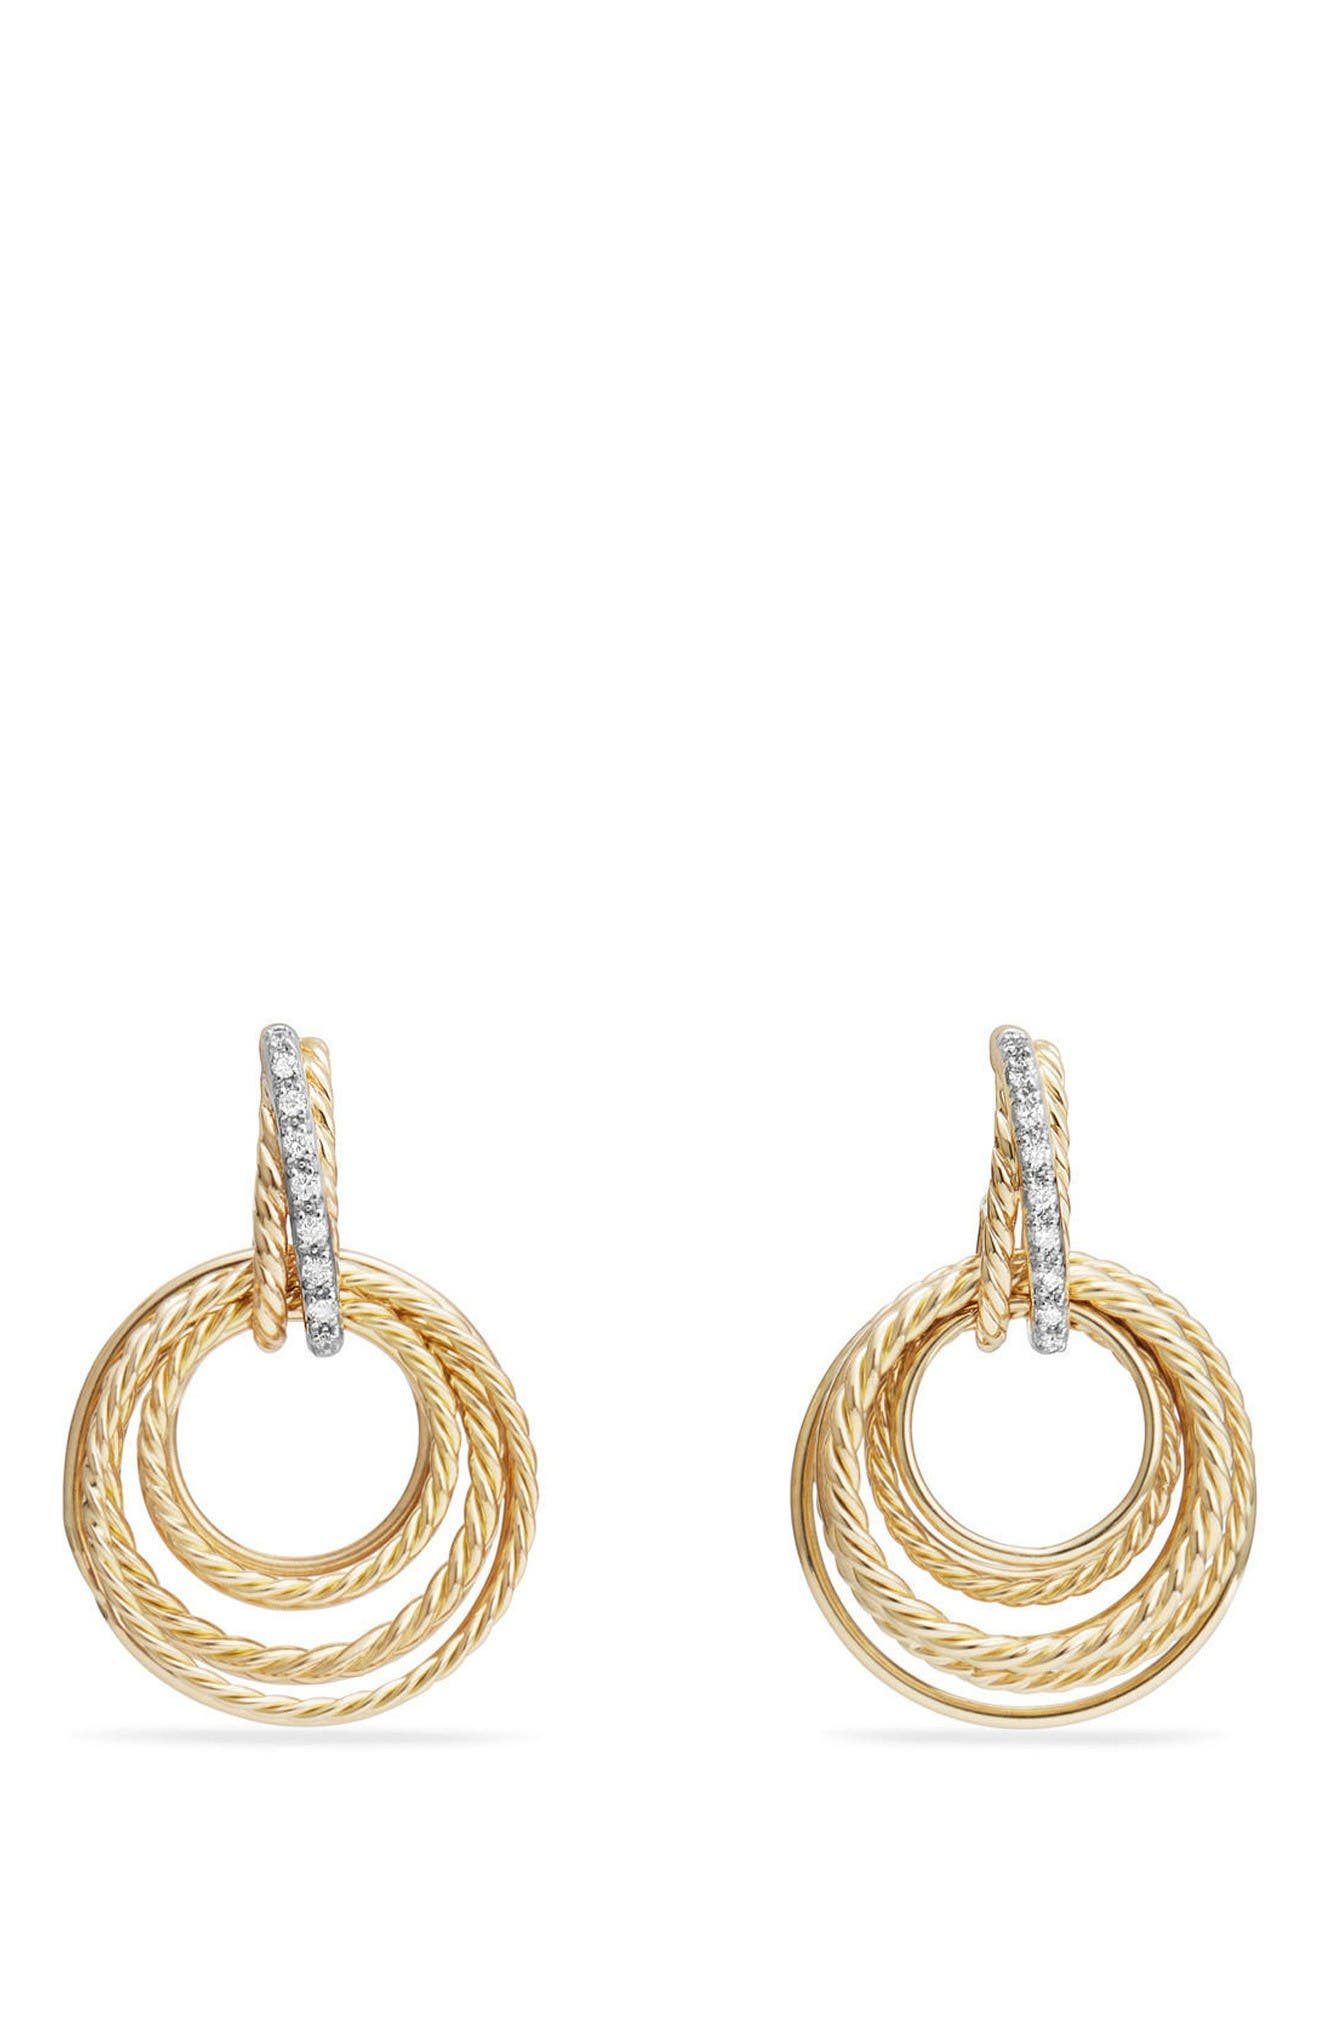 Crossover Diamond Drop Earrings,                             Main thumbnail 1, color,                             Yellow Gold/ Diamond